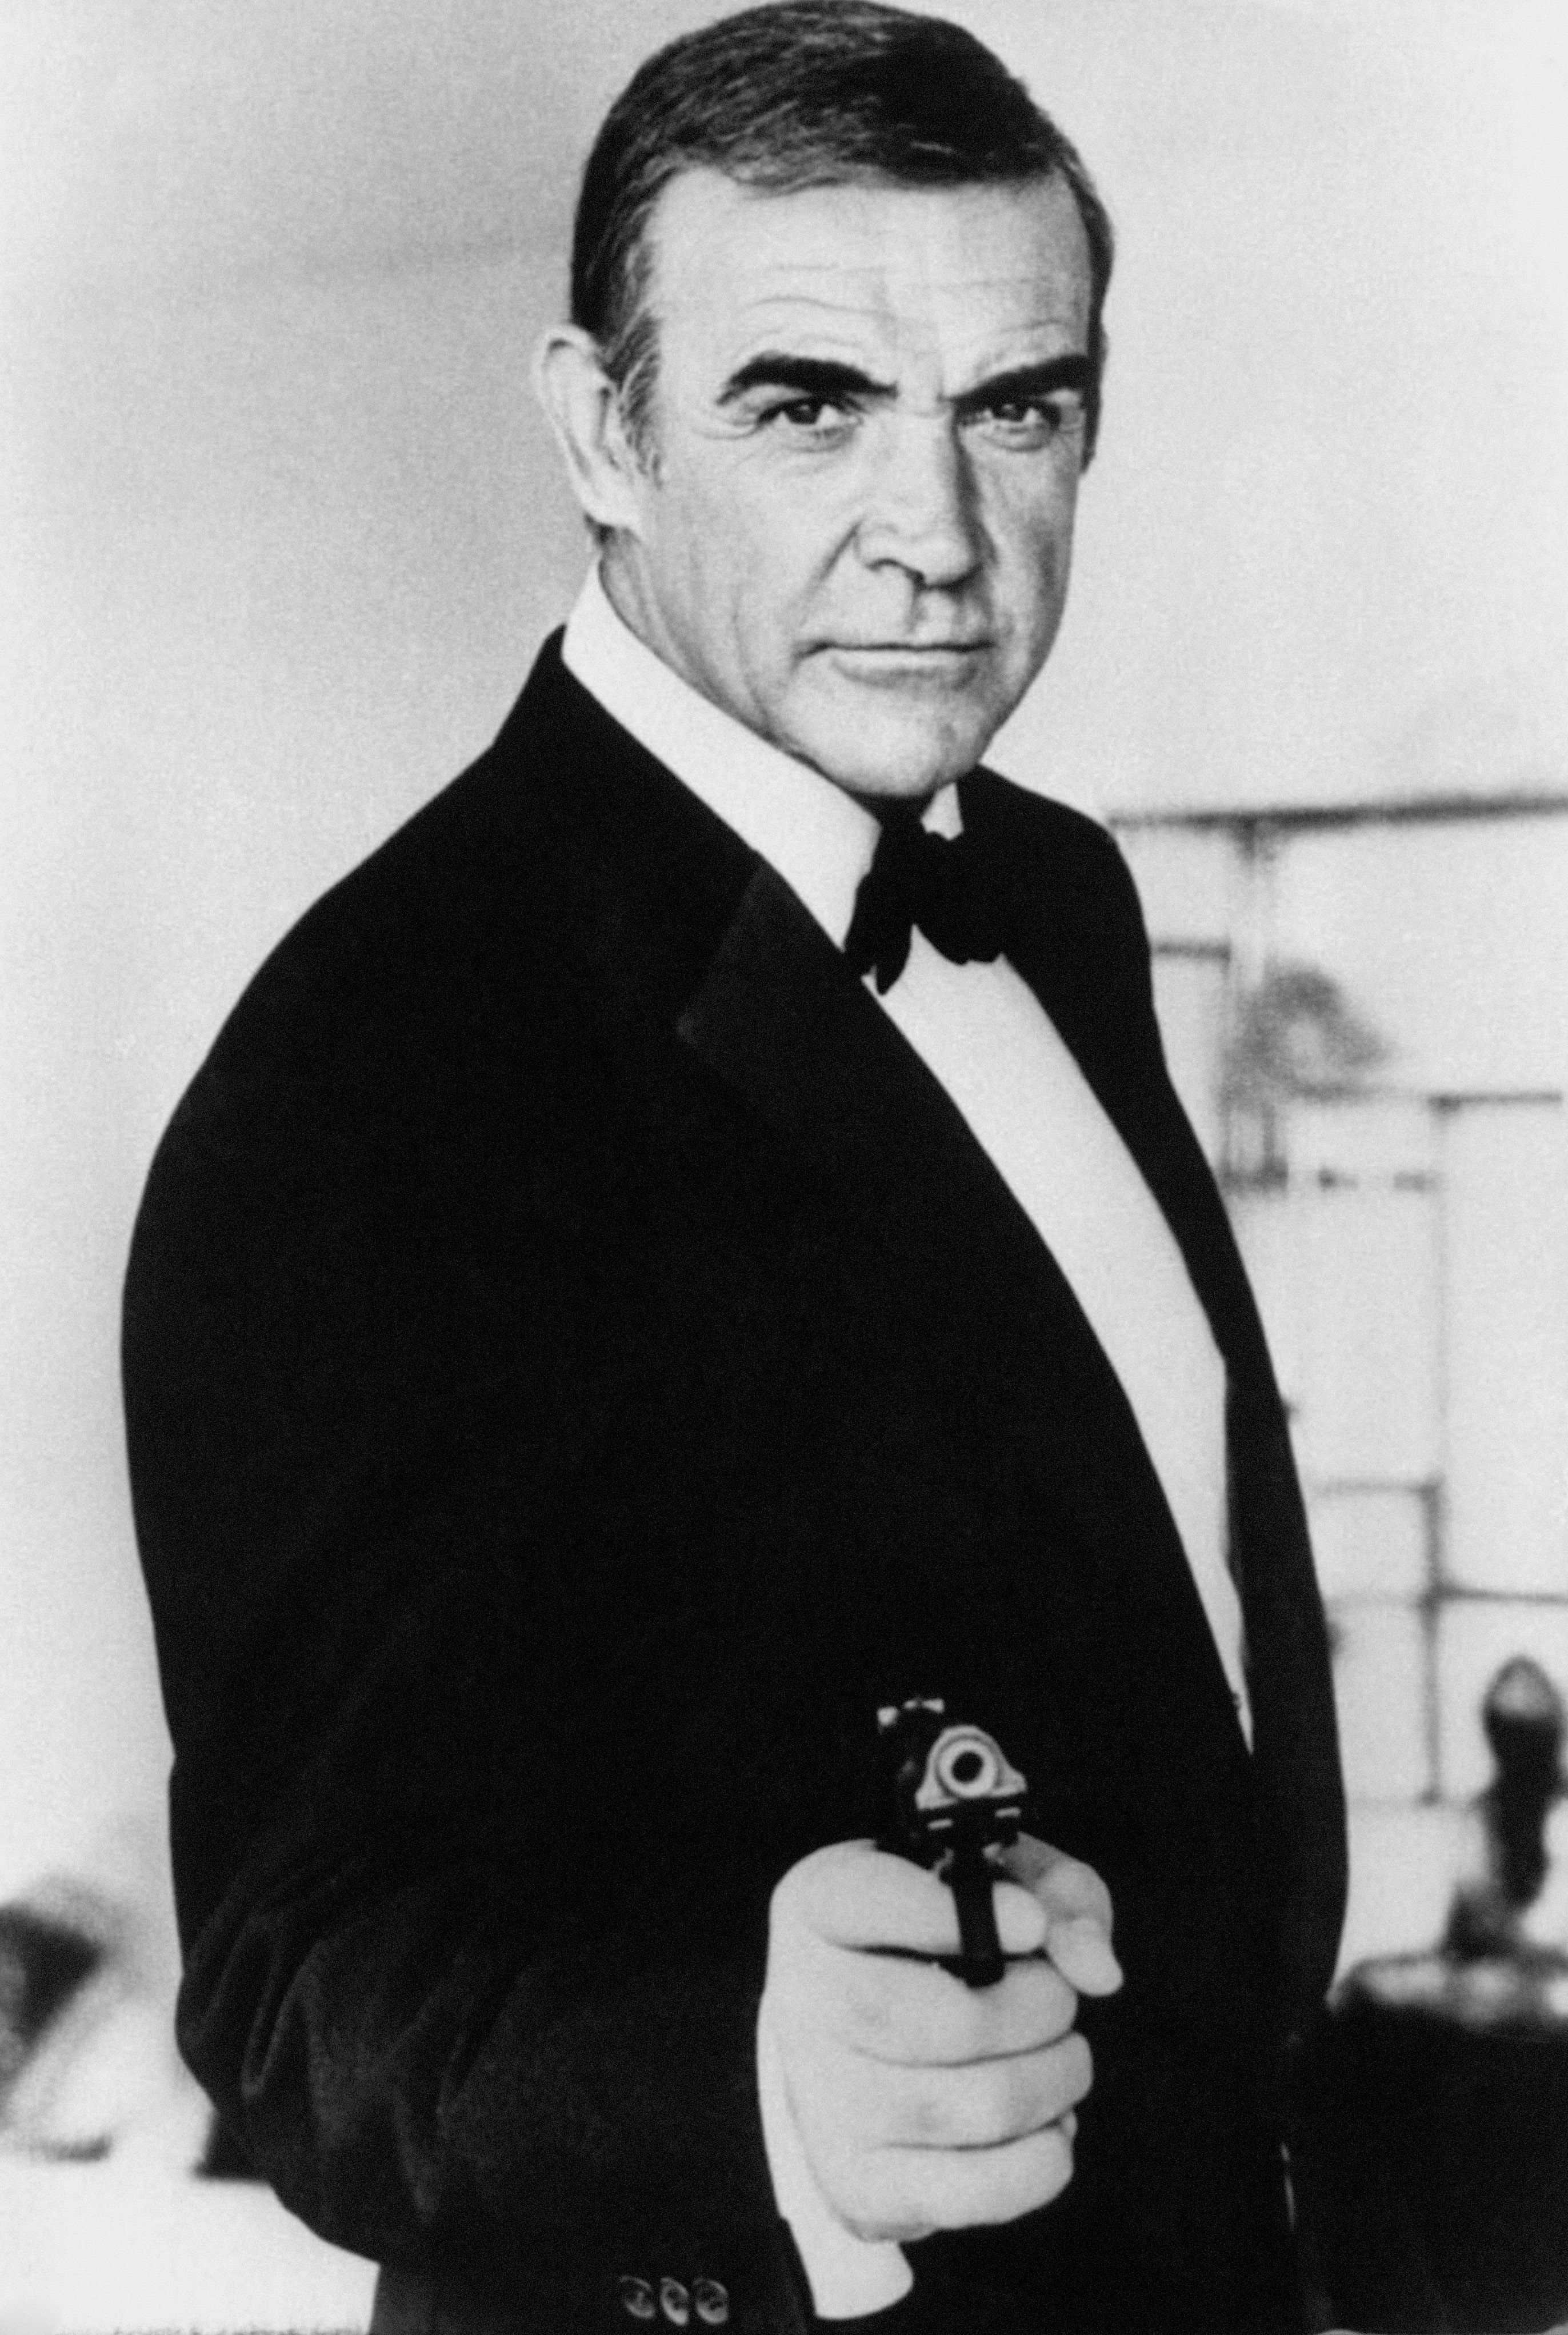 Sean Connery: 'Bond, James Bond', but So Much More